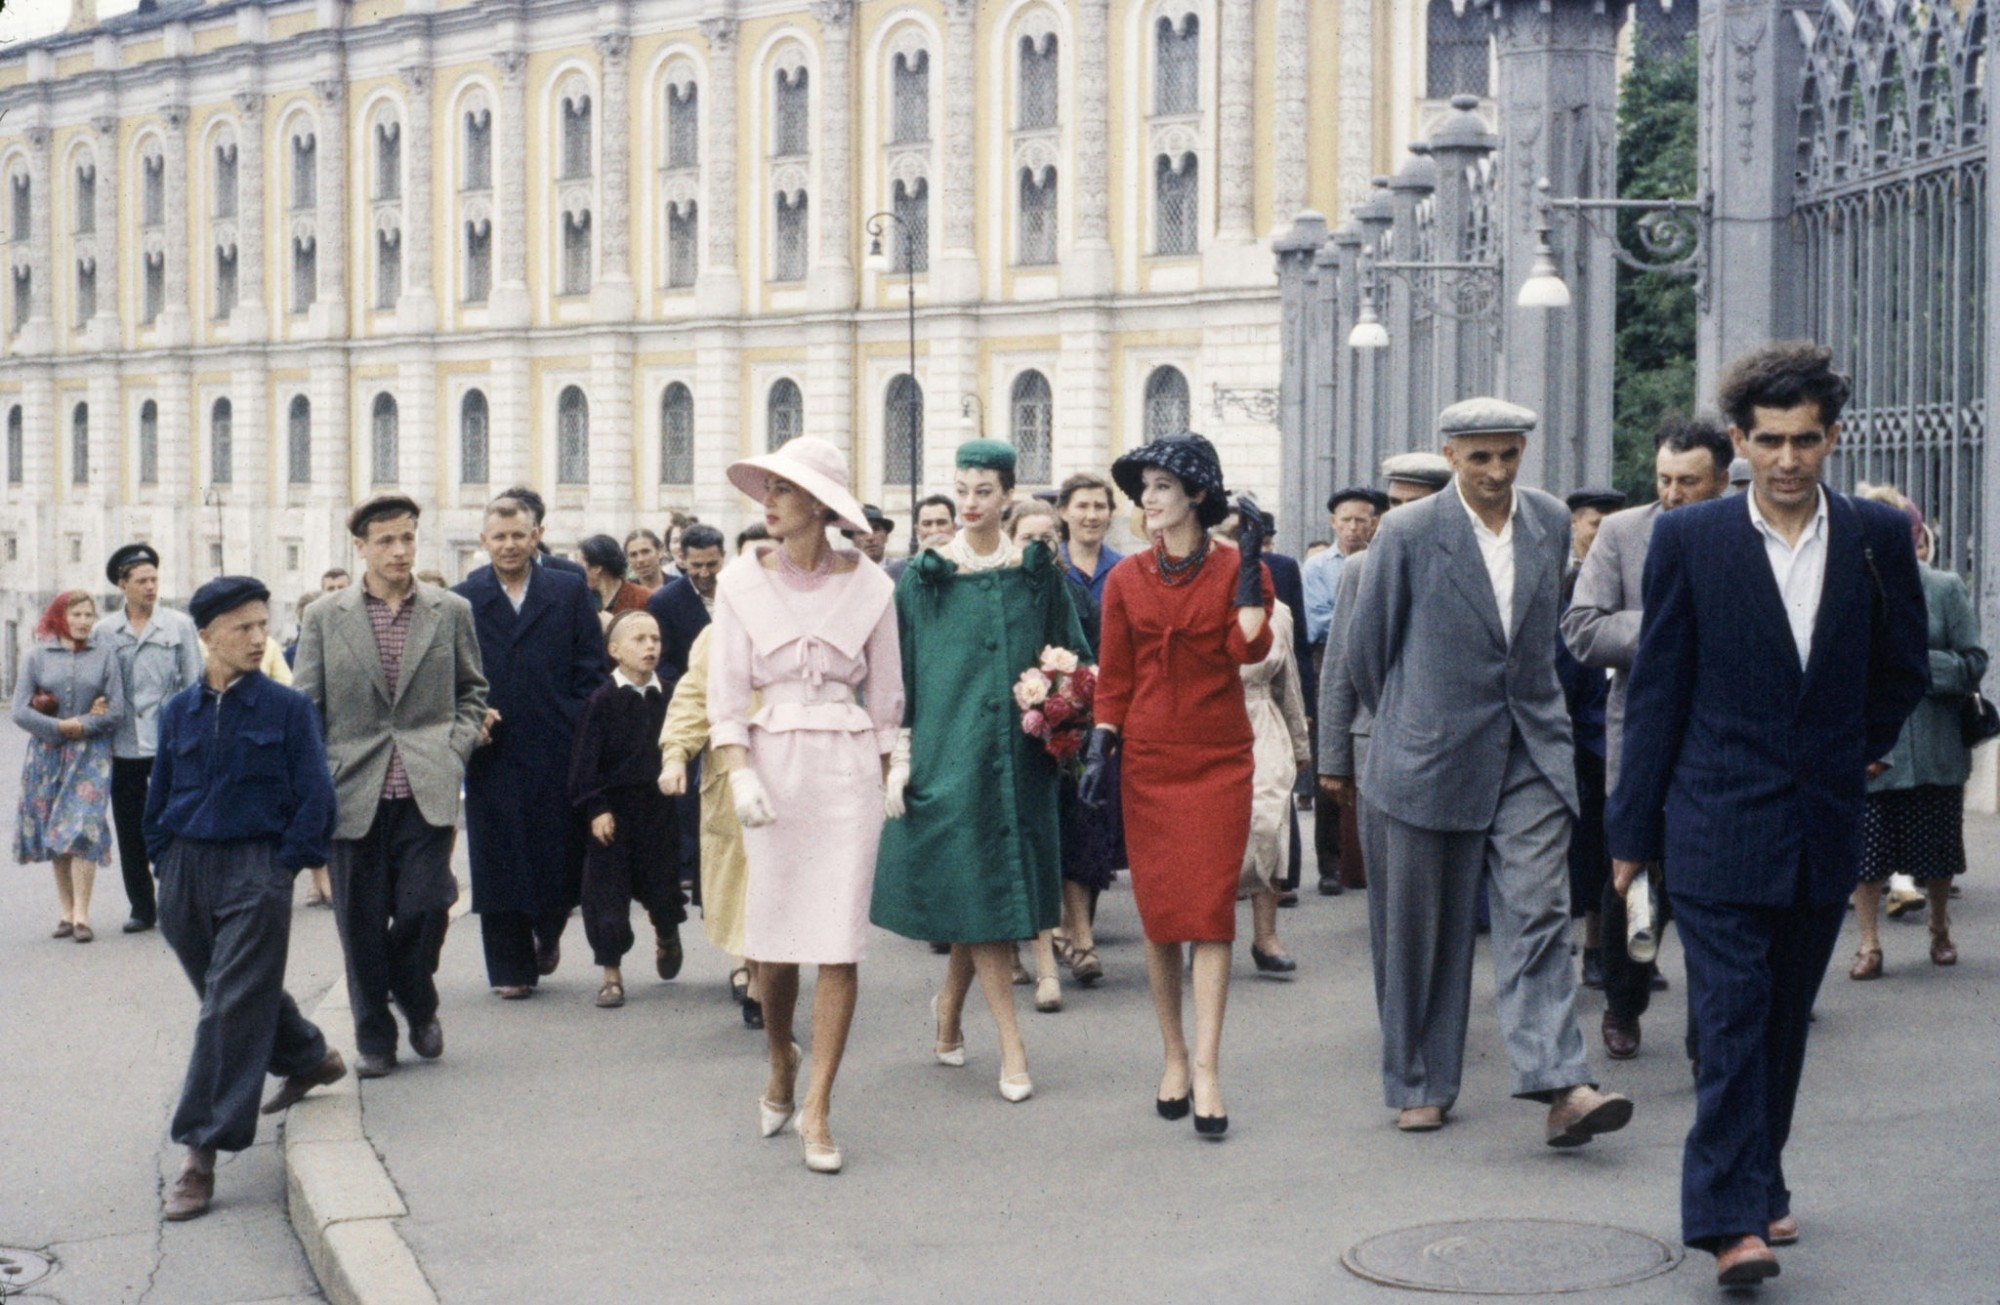 1959 Dior models in Soviet Union for officially sanctioned fashion show visiting GUM deptartment store by Howard Sochurek2